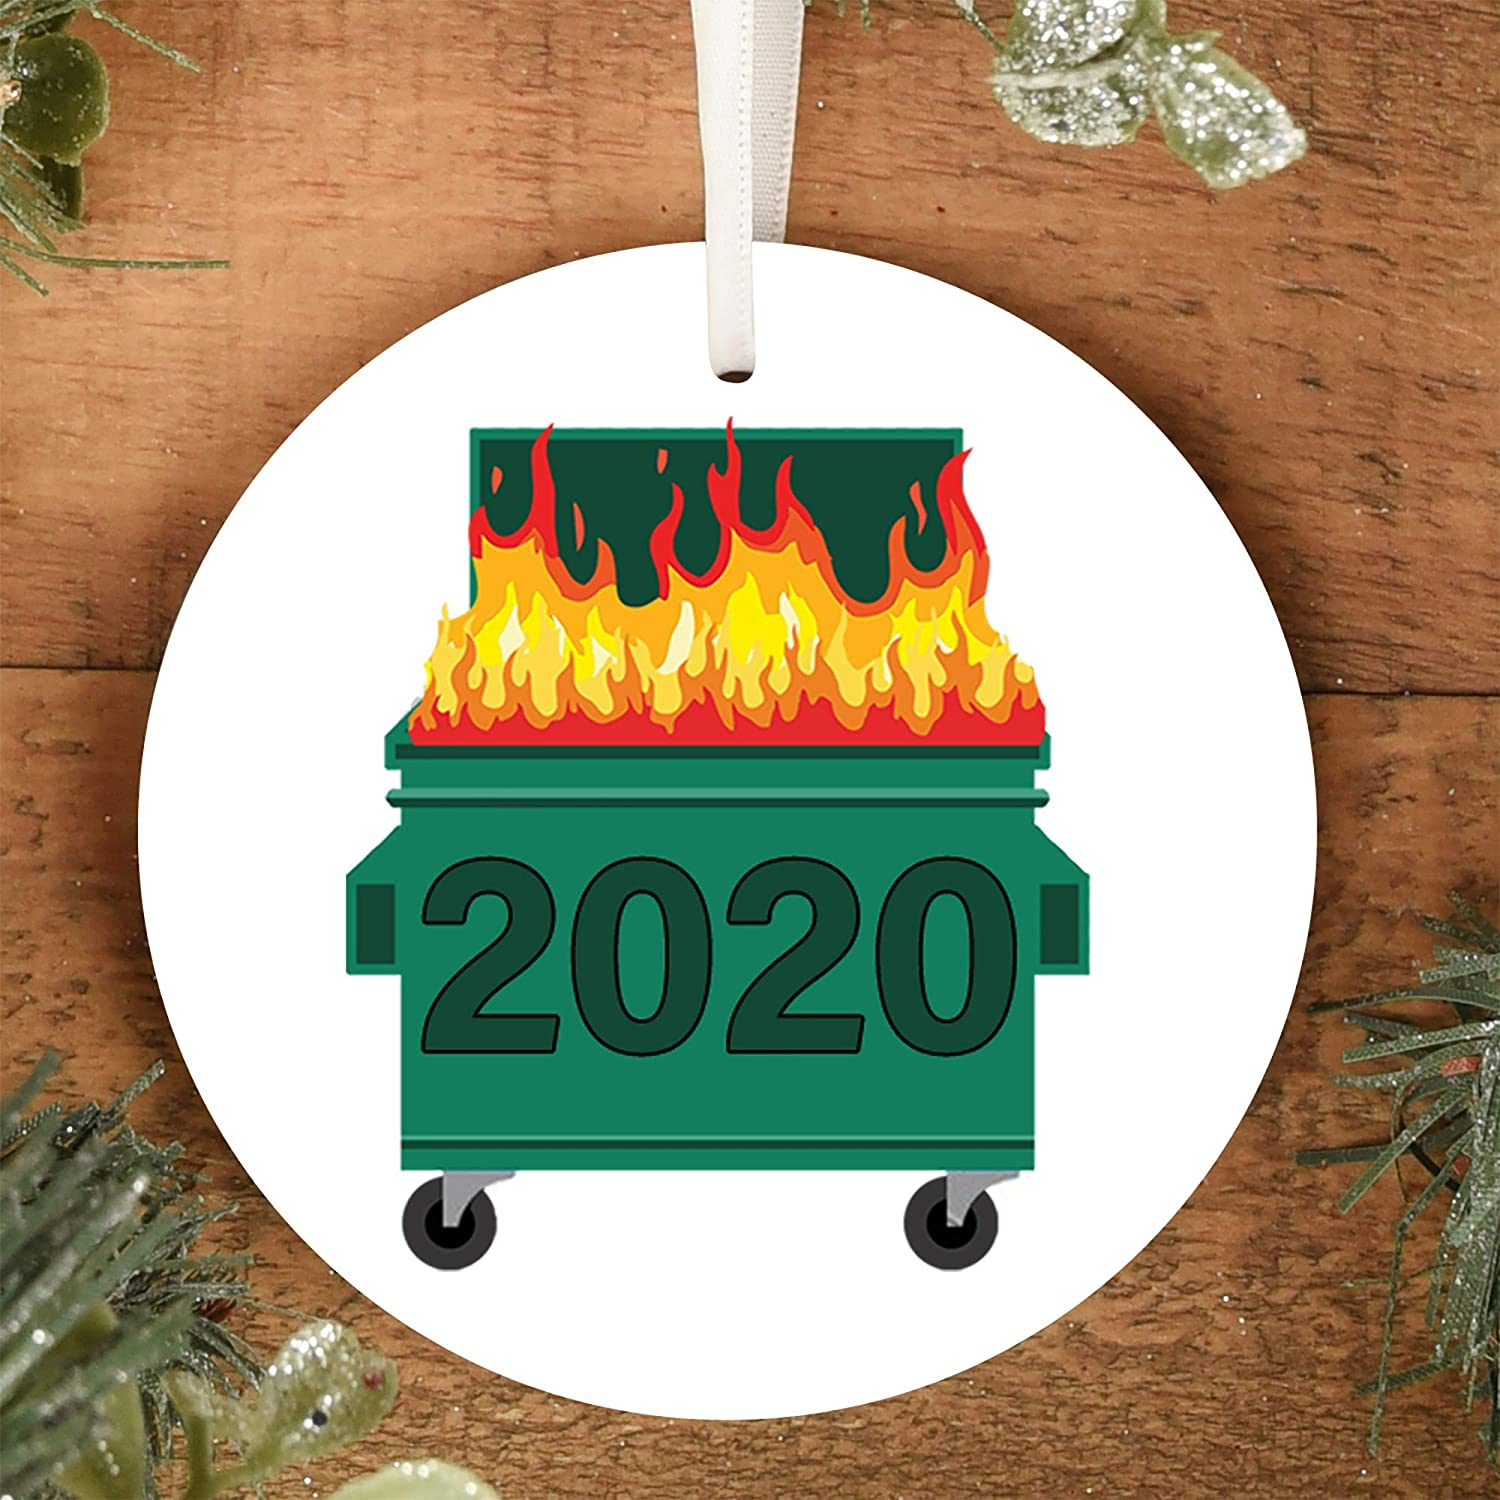 2020 Satin Christmas Year Ornament Amazon.com: Dumpster Fire 2020 Christmas Tree Ornament Comes with